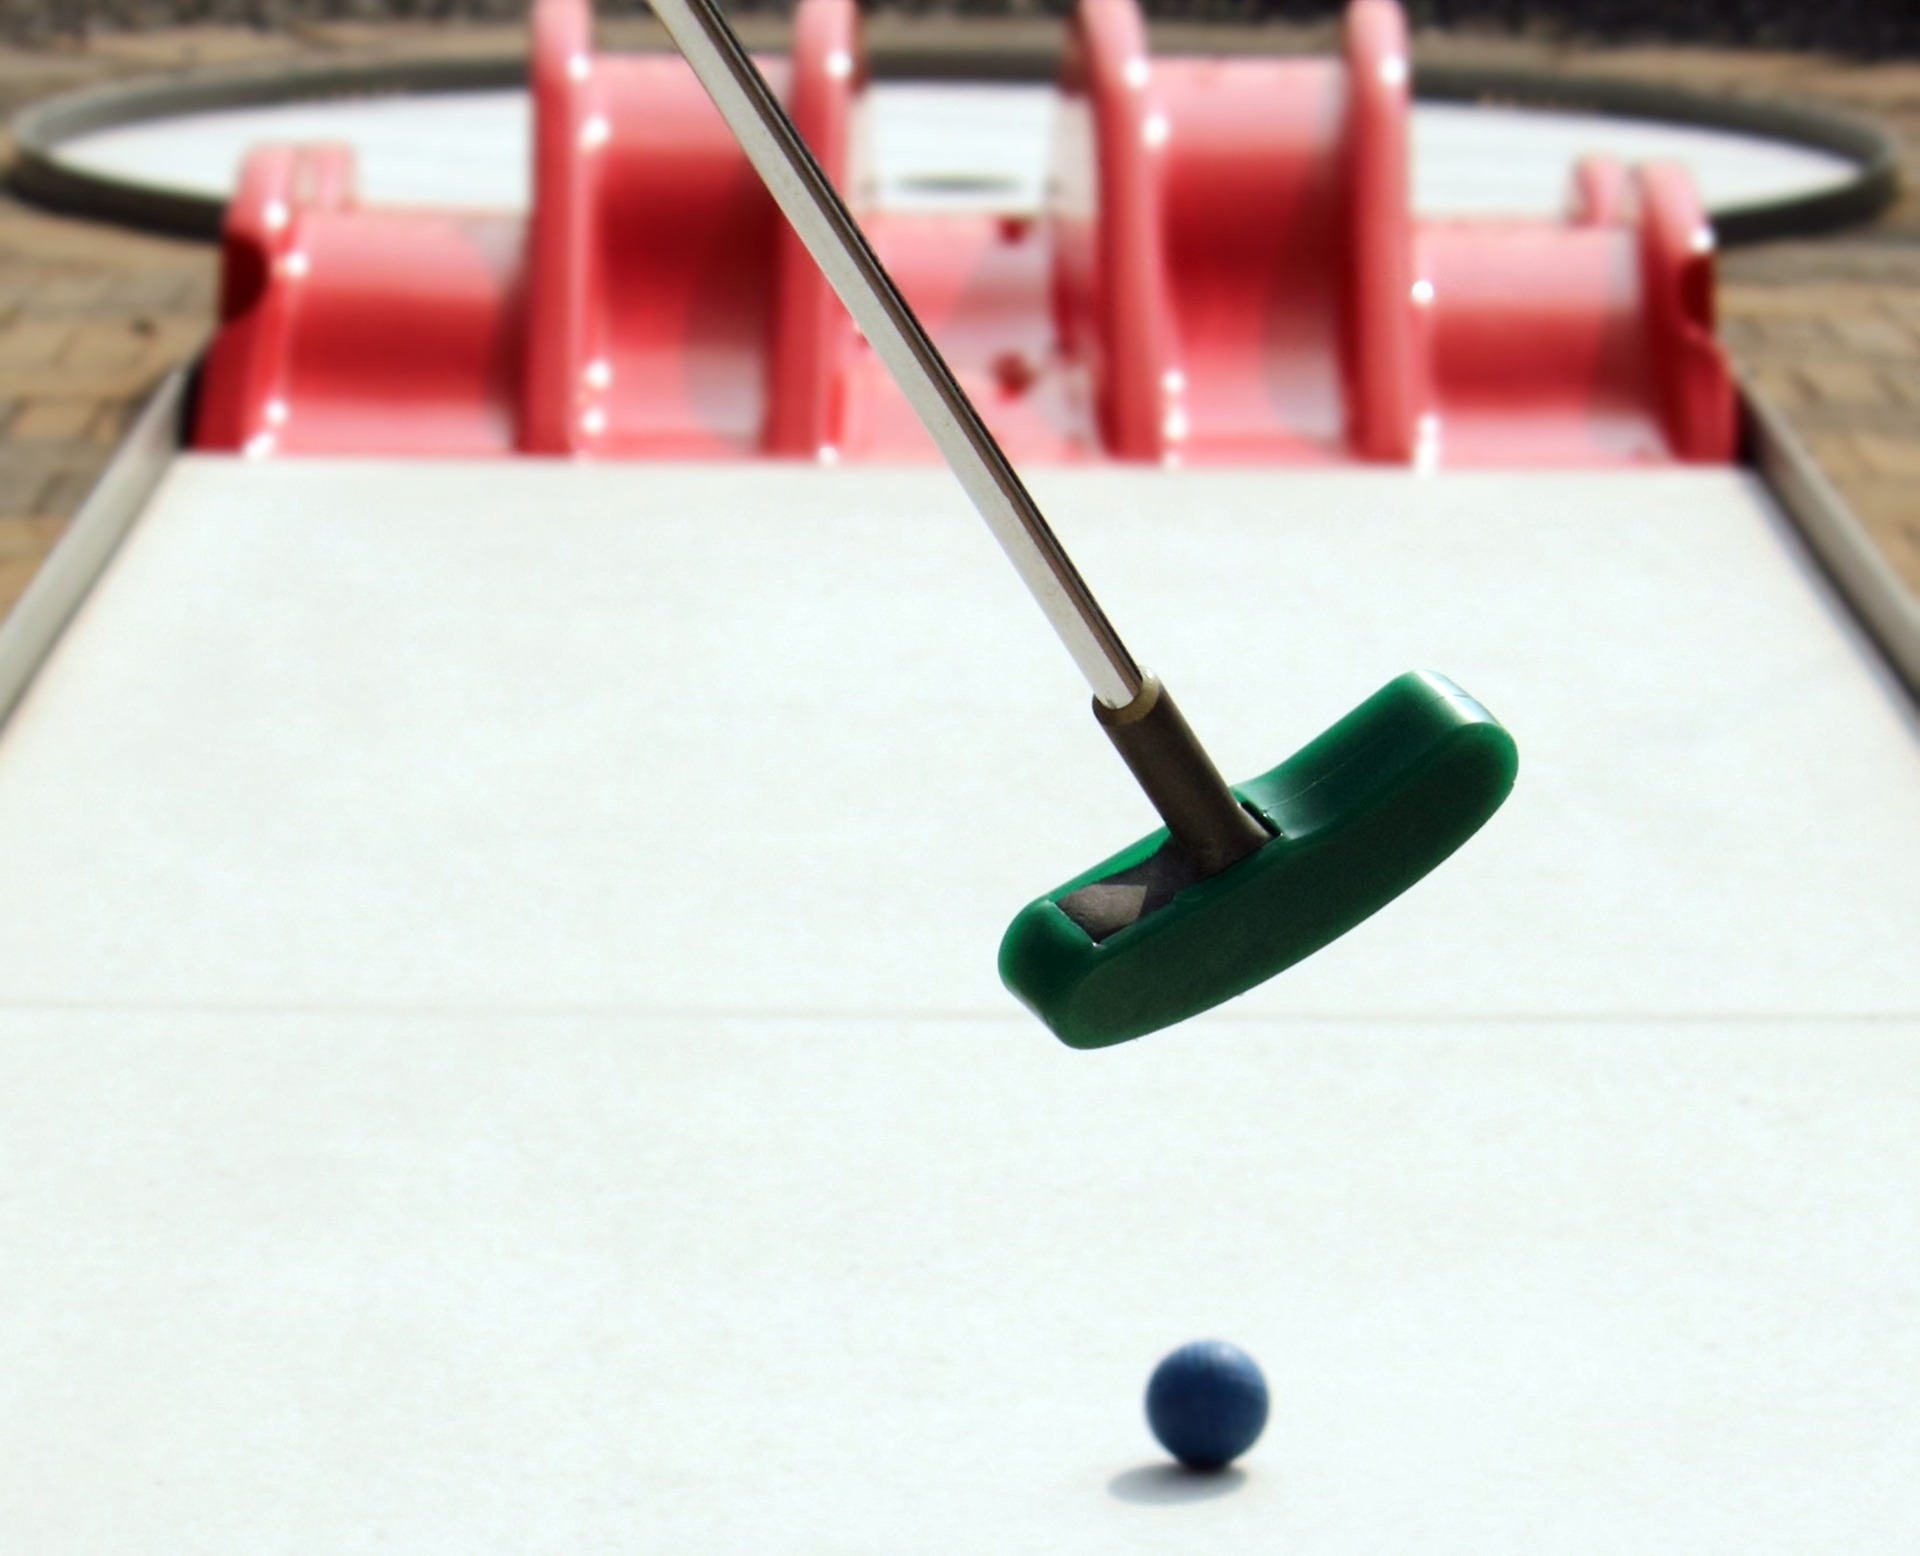 Fun Mini Golf Games to Play on a First Date